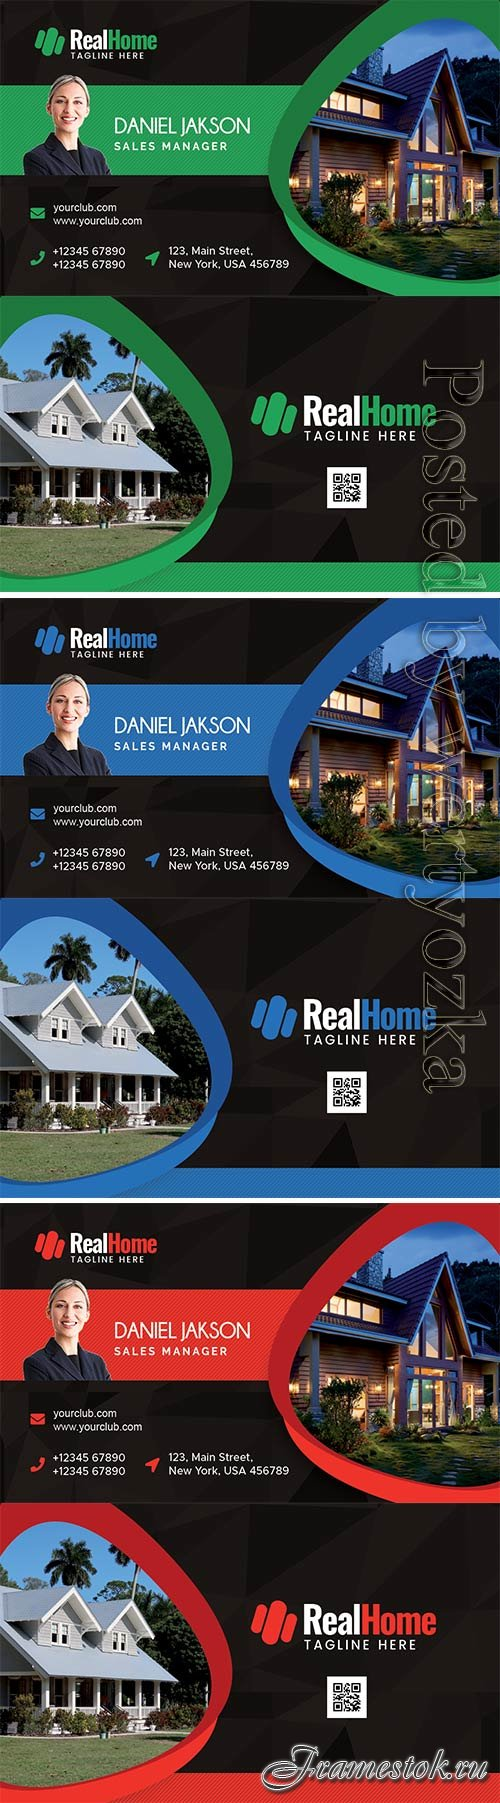 Real Estate Company Business Card PSD